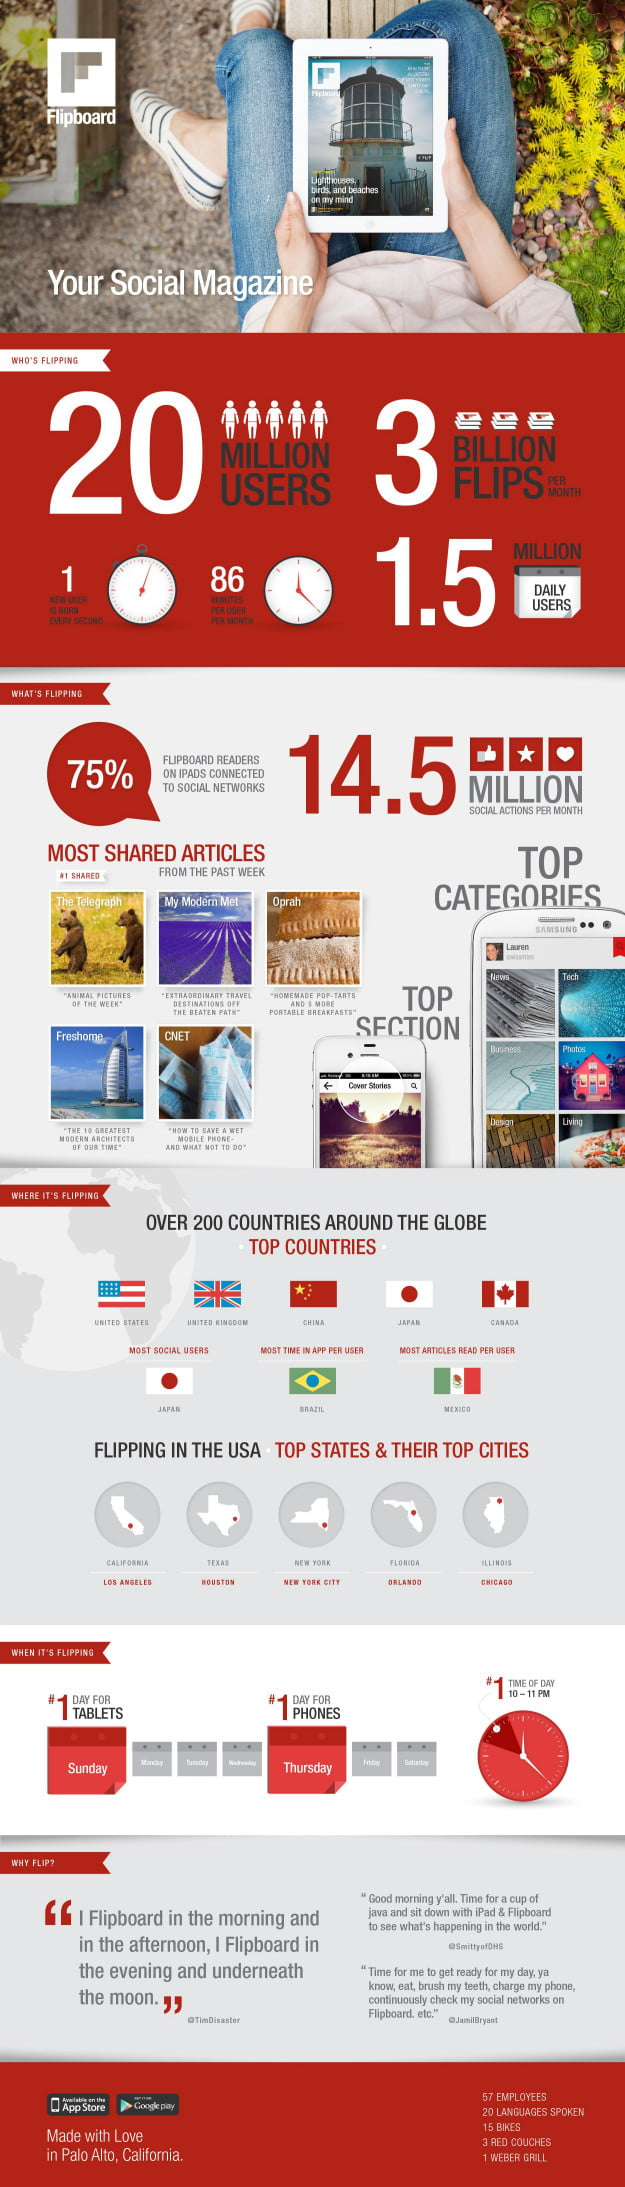 Flipboard infoGraphic 20 million users